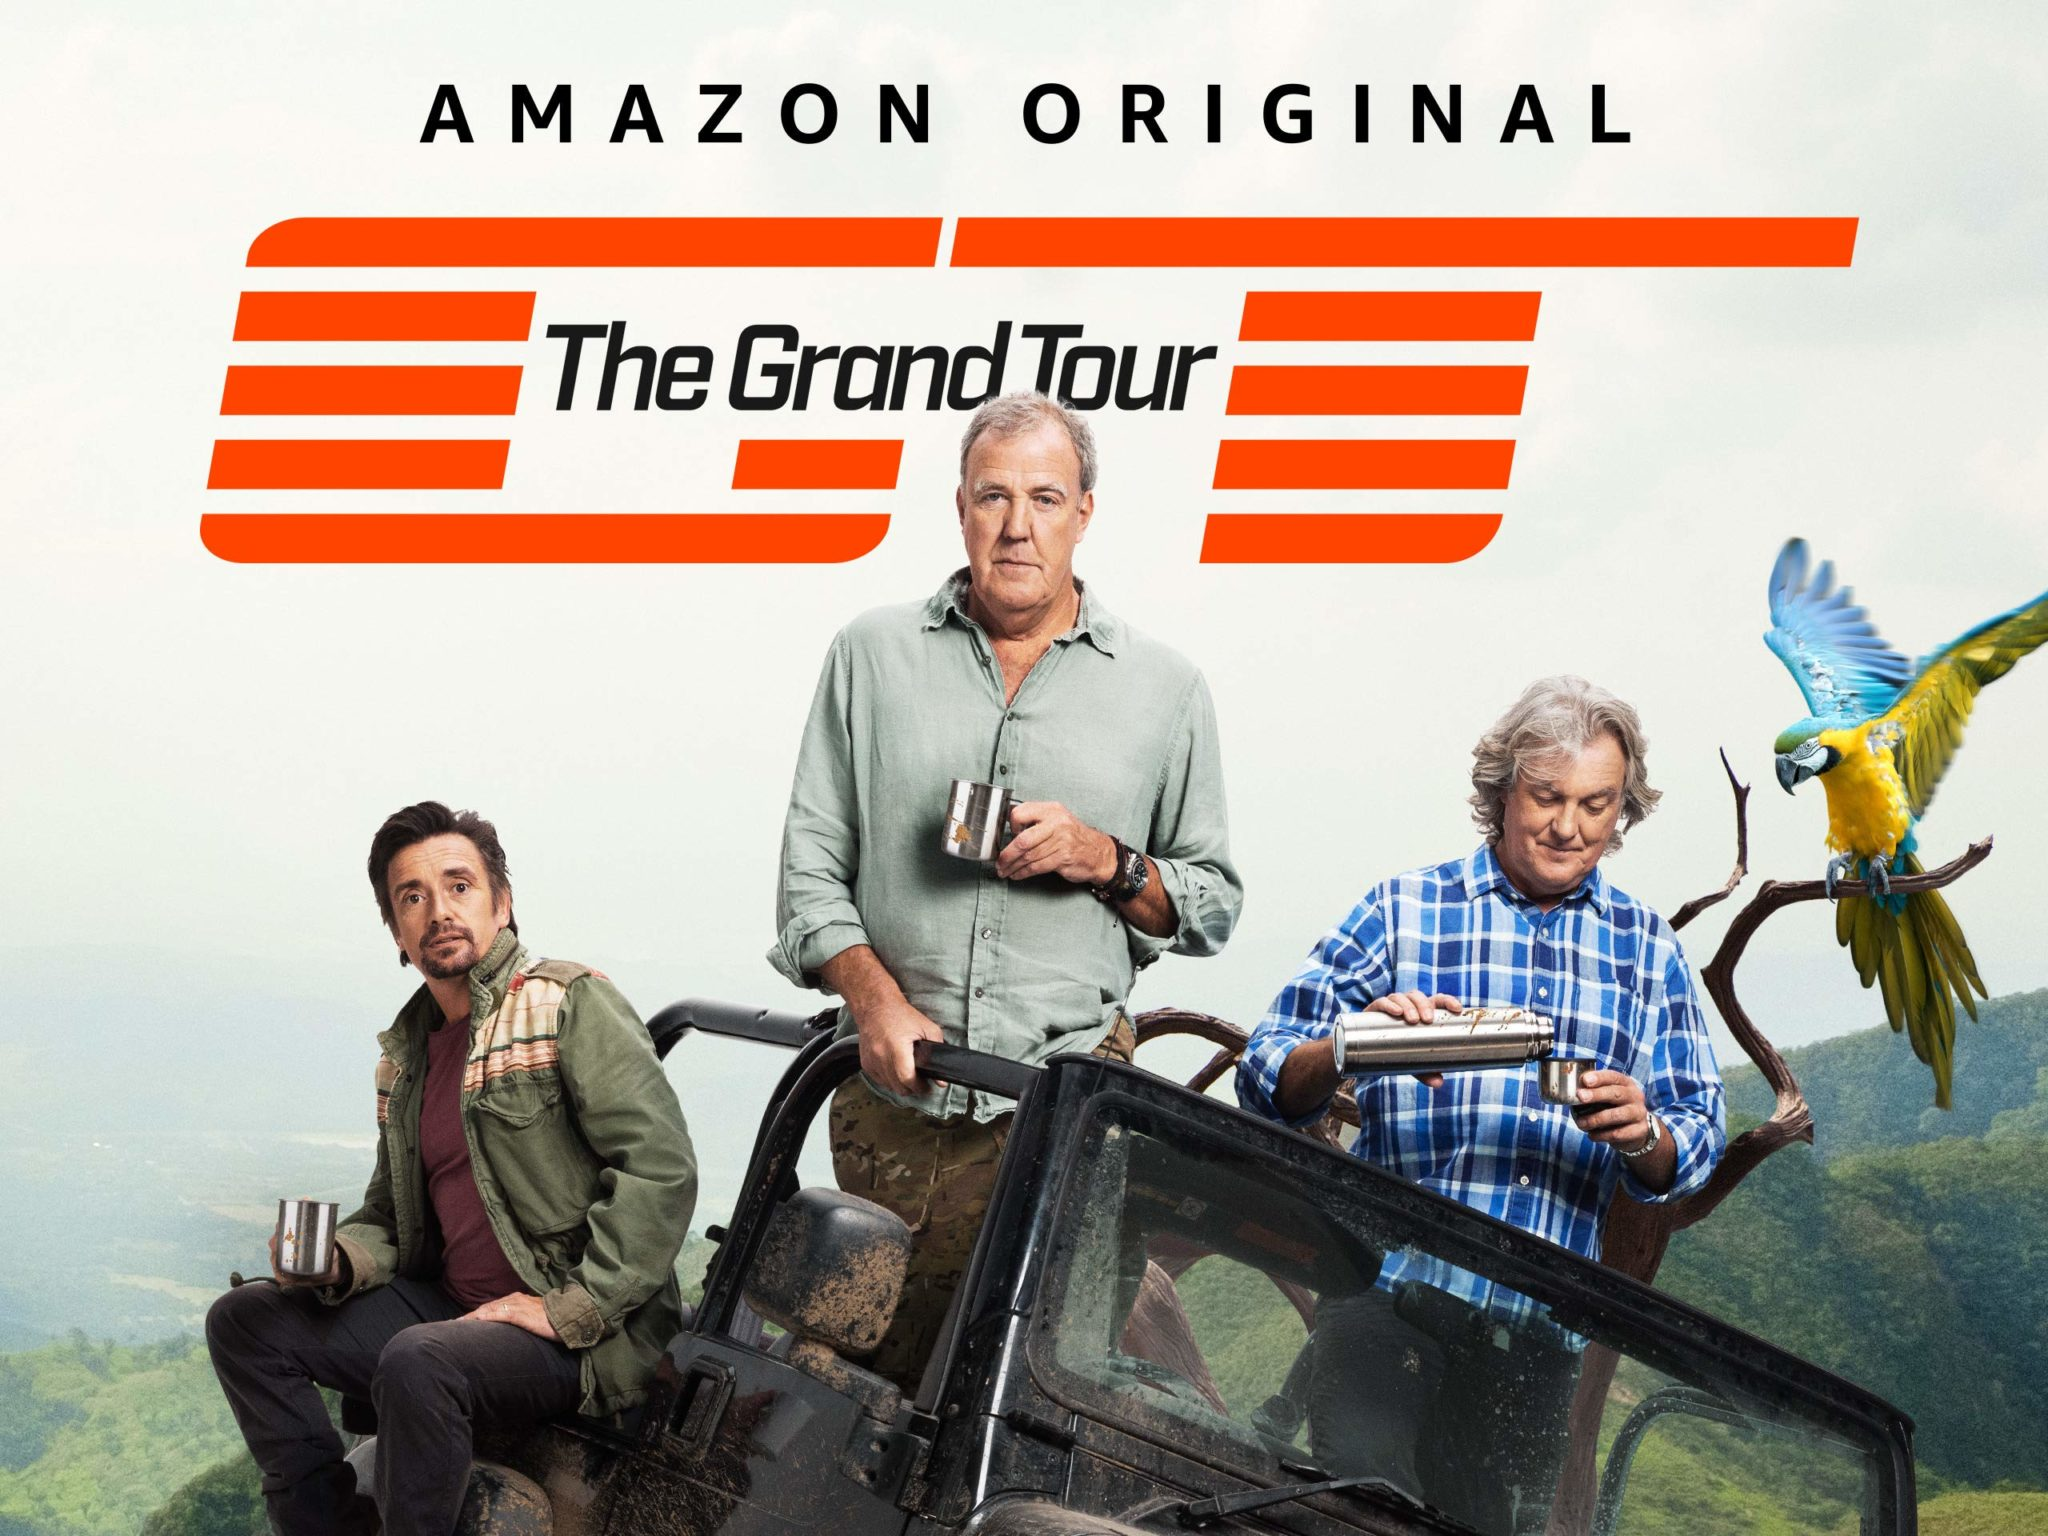 The Grand Tour Richard Hammond, Jeremy Clarkson, James May